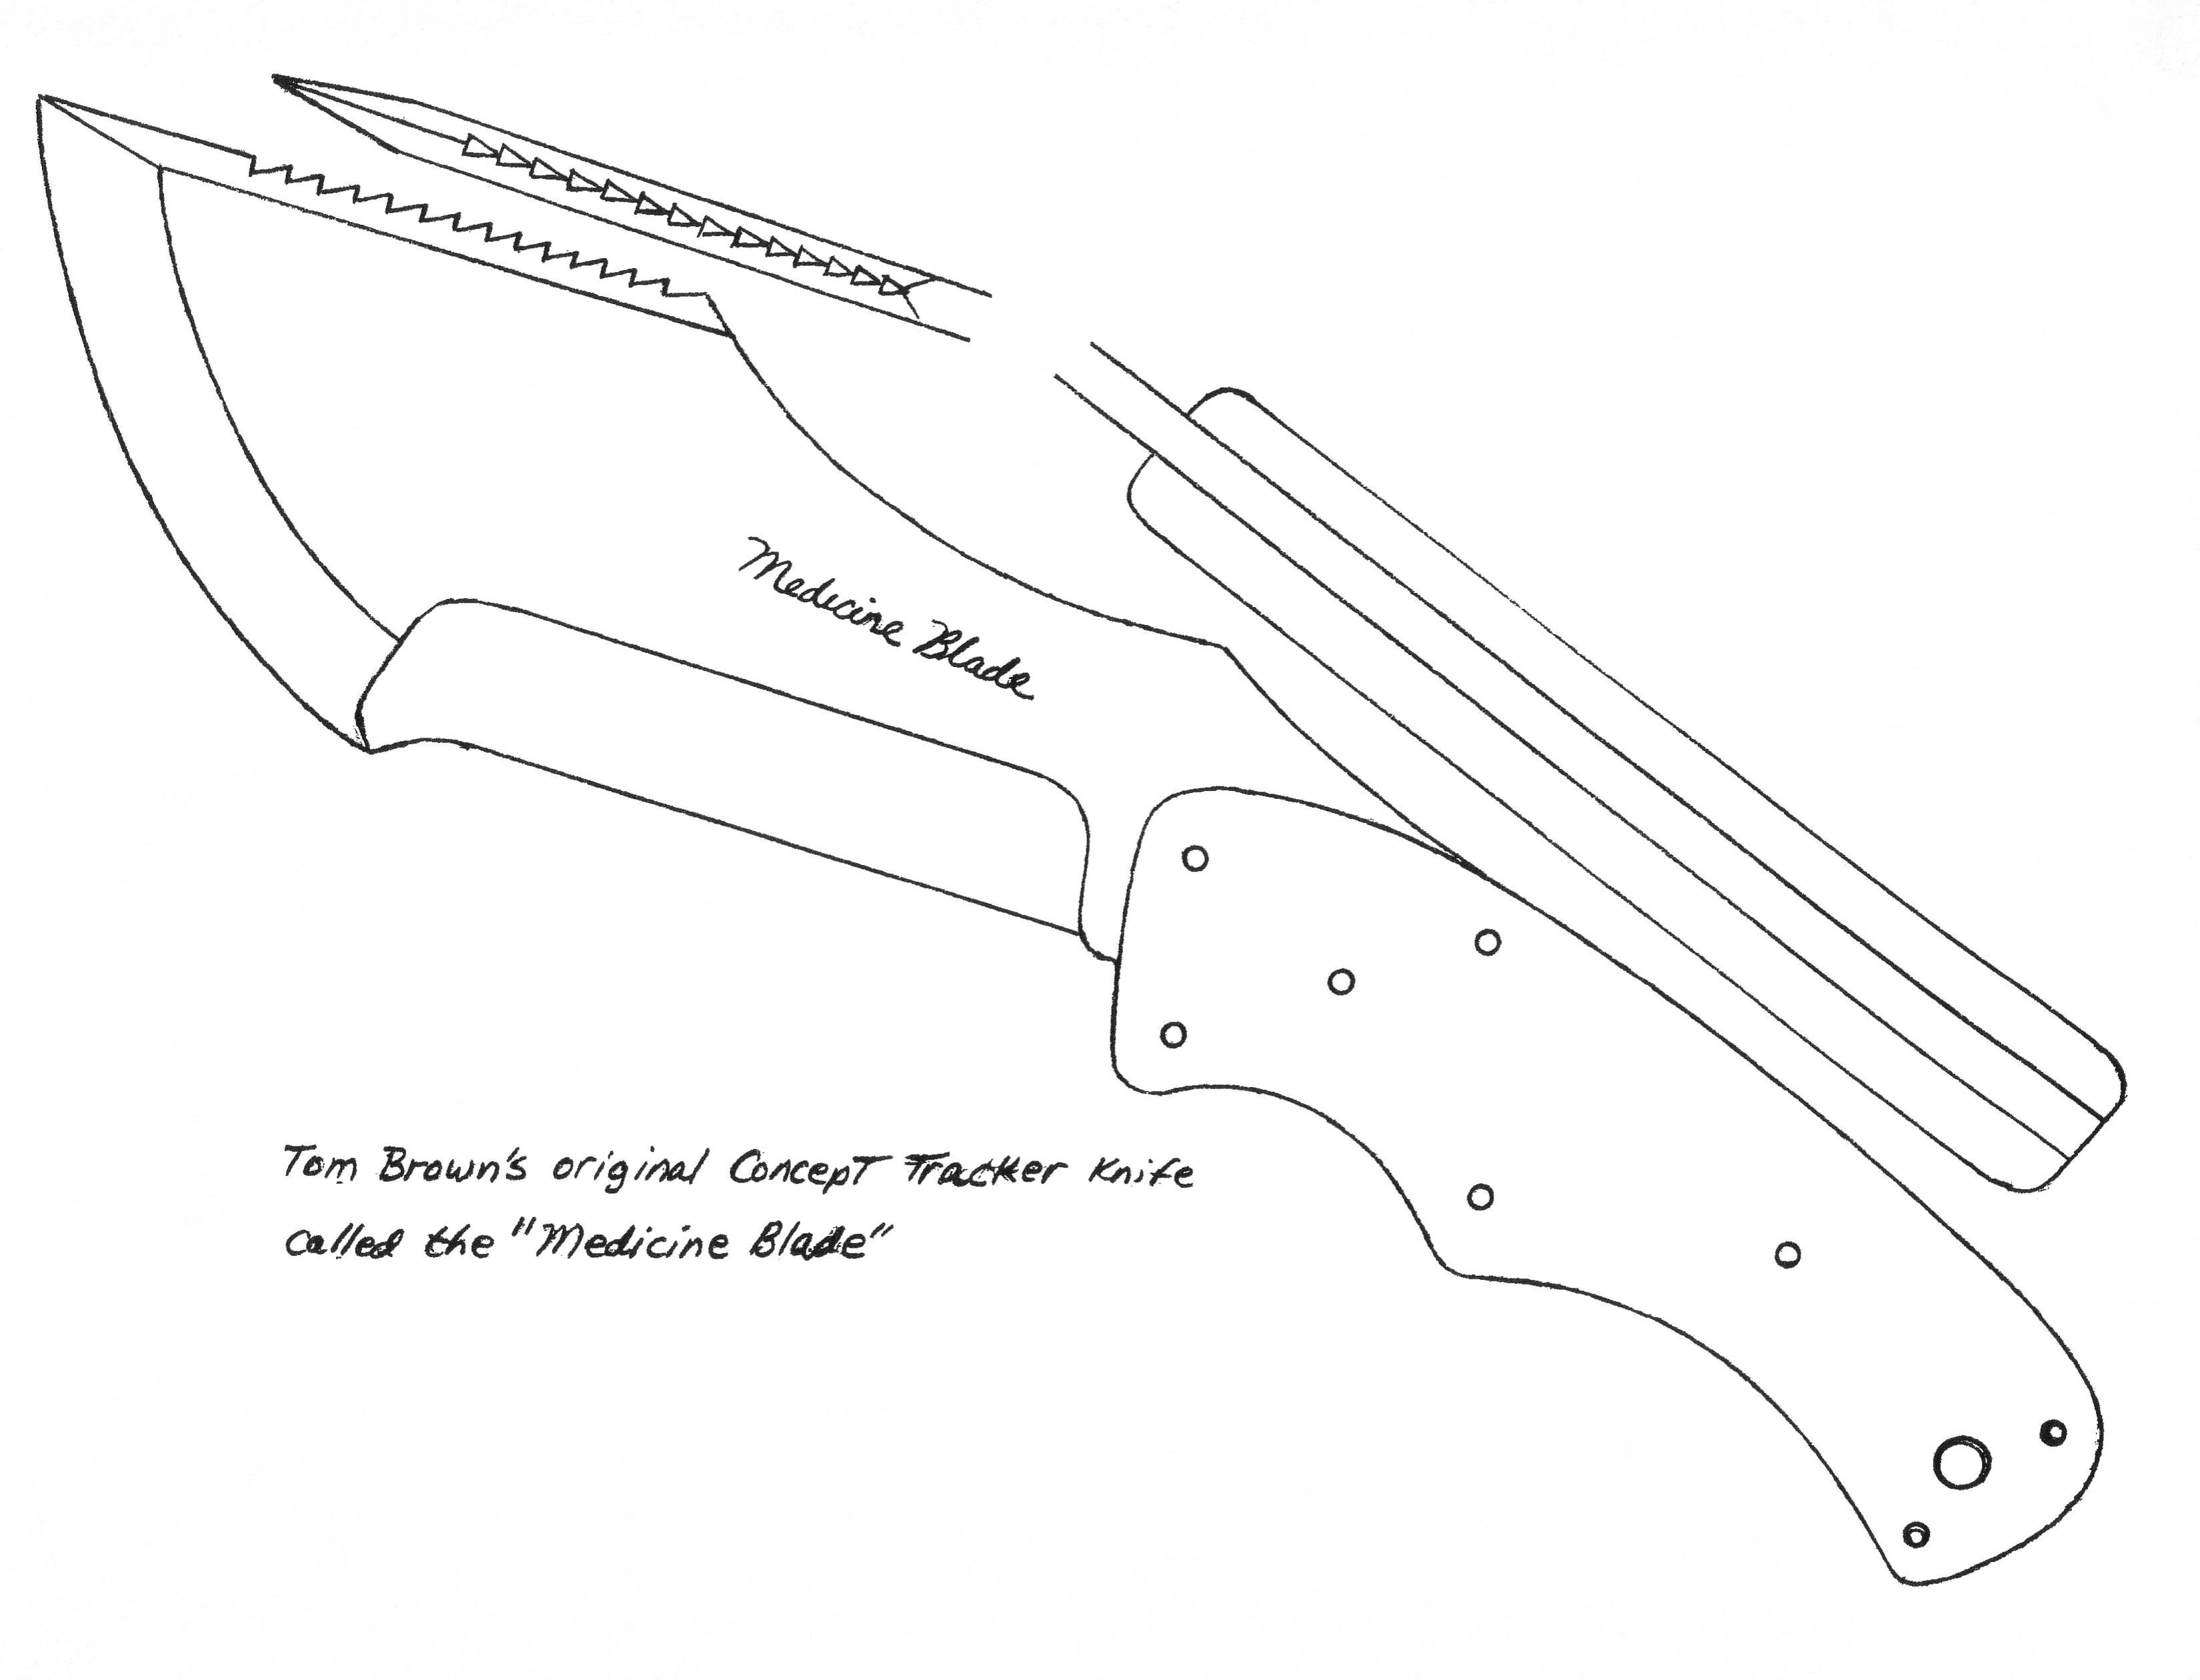 Blade templates beck the real tracker story custom knives blade templates beck the real tracker story malvernweather Choice Image